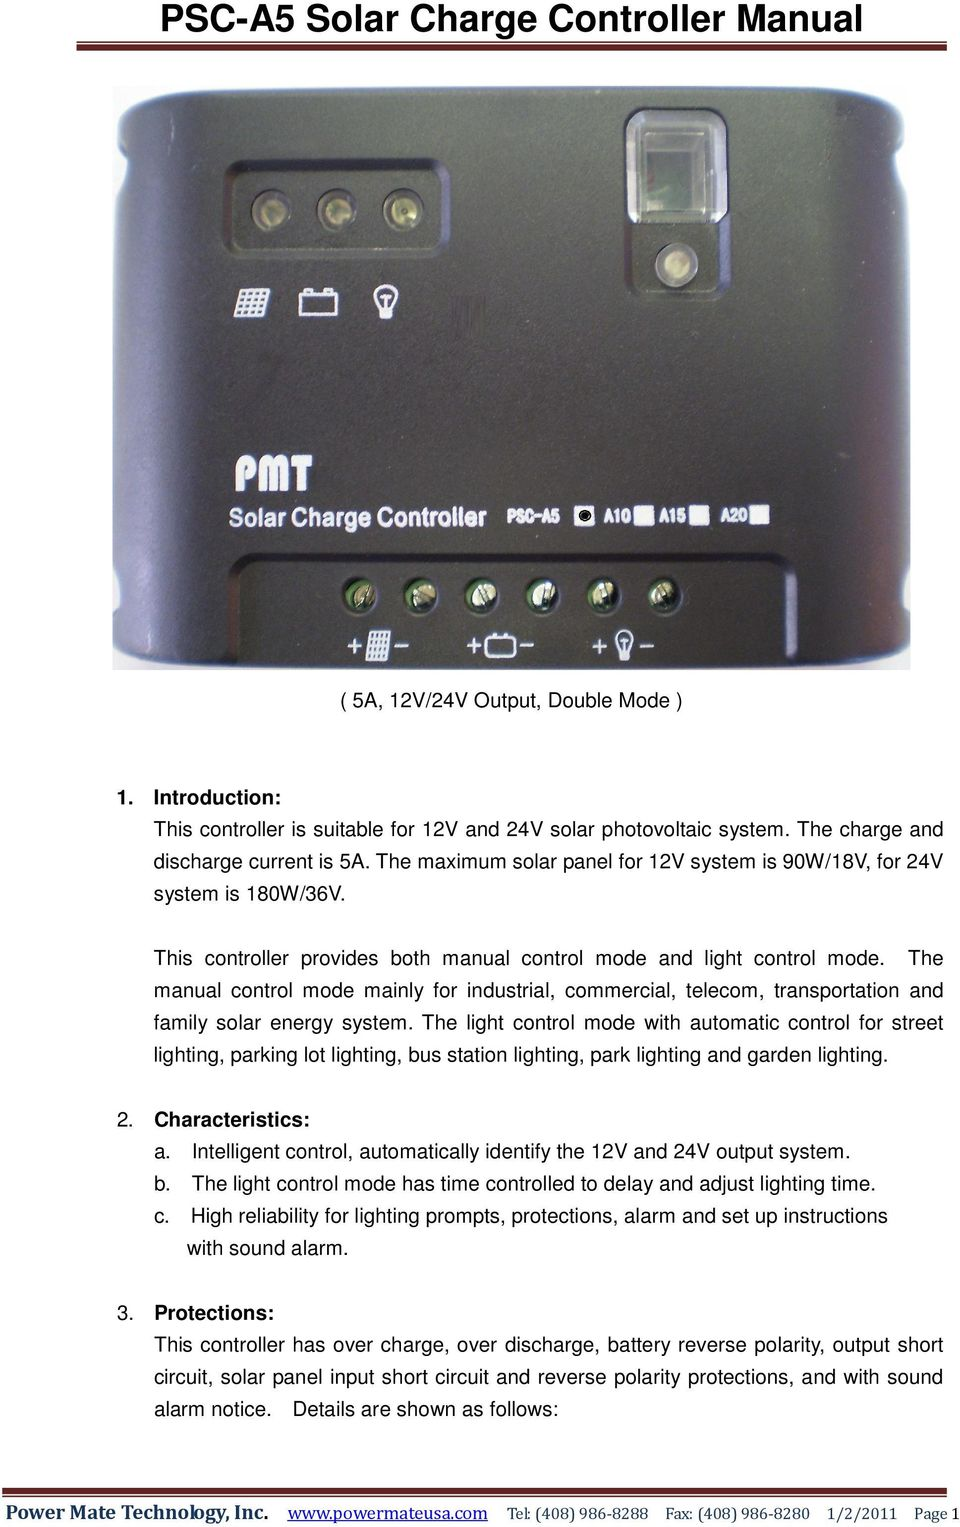 Psc A5 Solar Charge Controller Manual Pdf Pwm 10a 12v24v Automatic Art Of Circuits The Control Mode Mainly For Industrial Commercial Telecom Transportation And Family